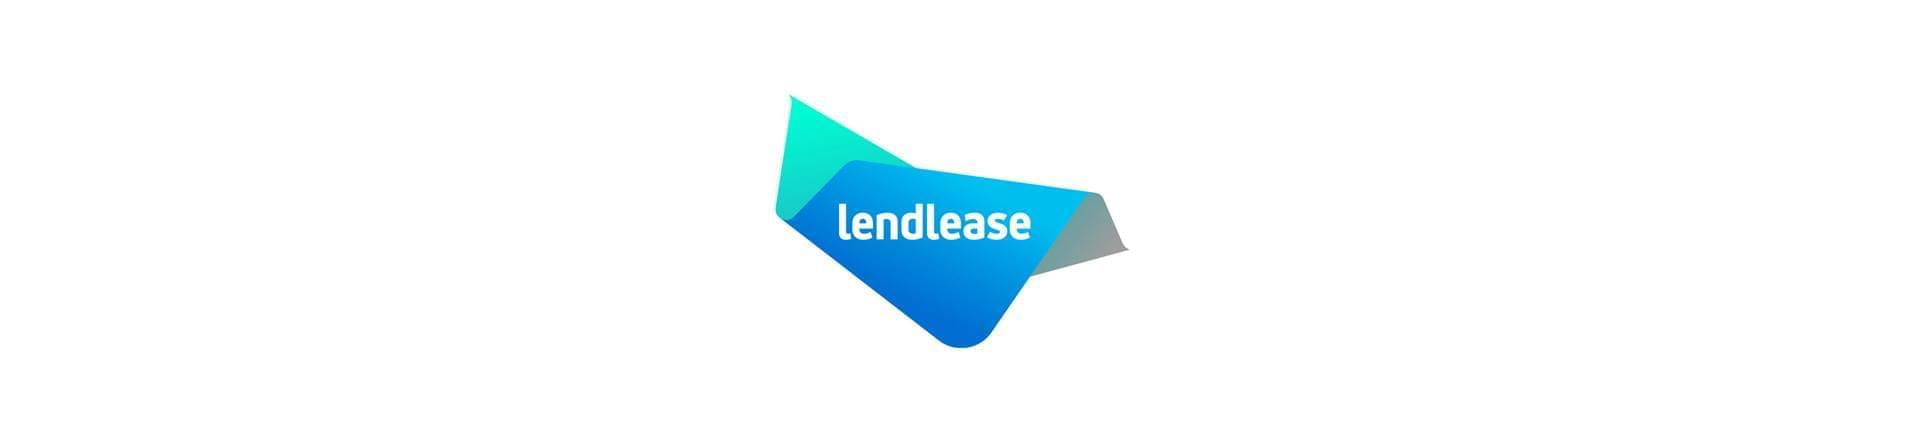 Lendlease logo | #aplaceforme at Lendlease - Promoting Promotions